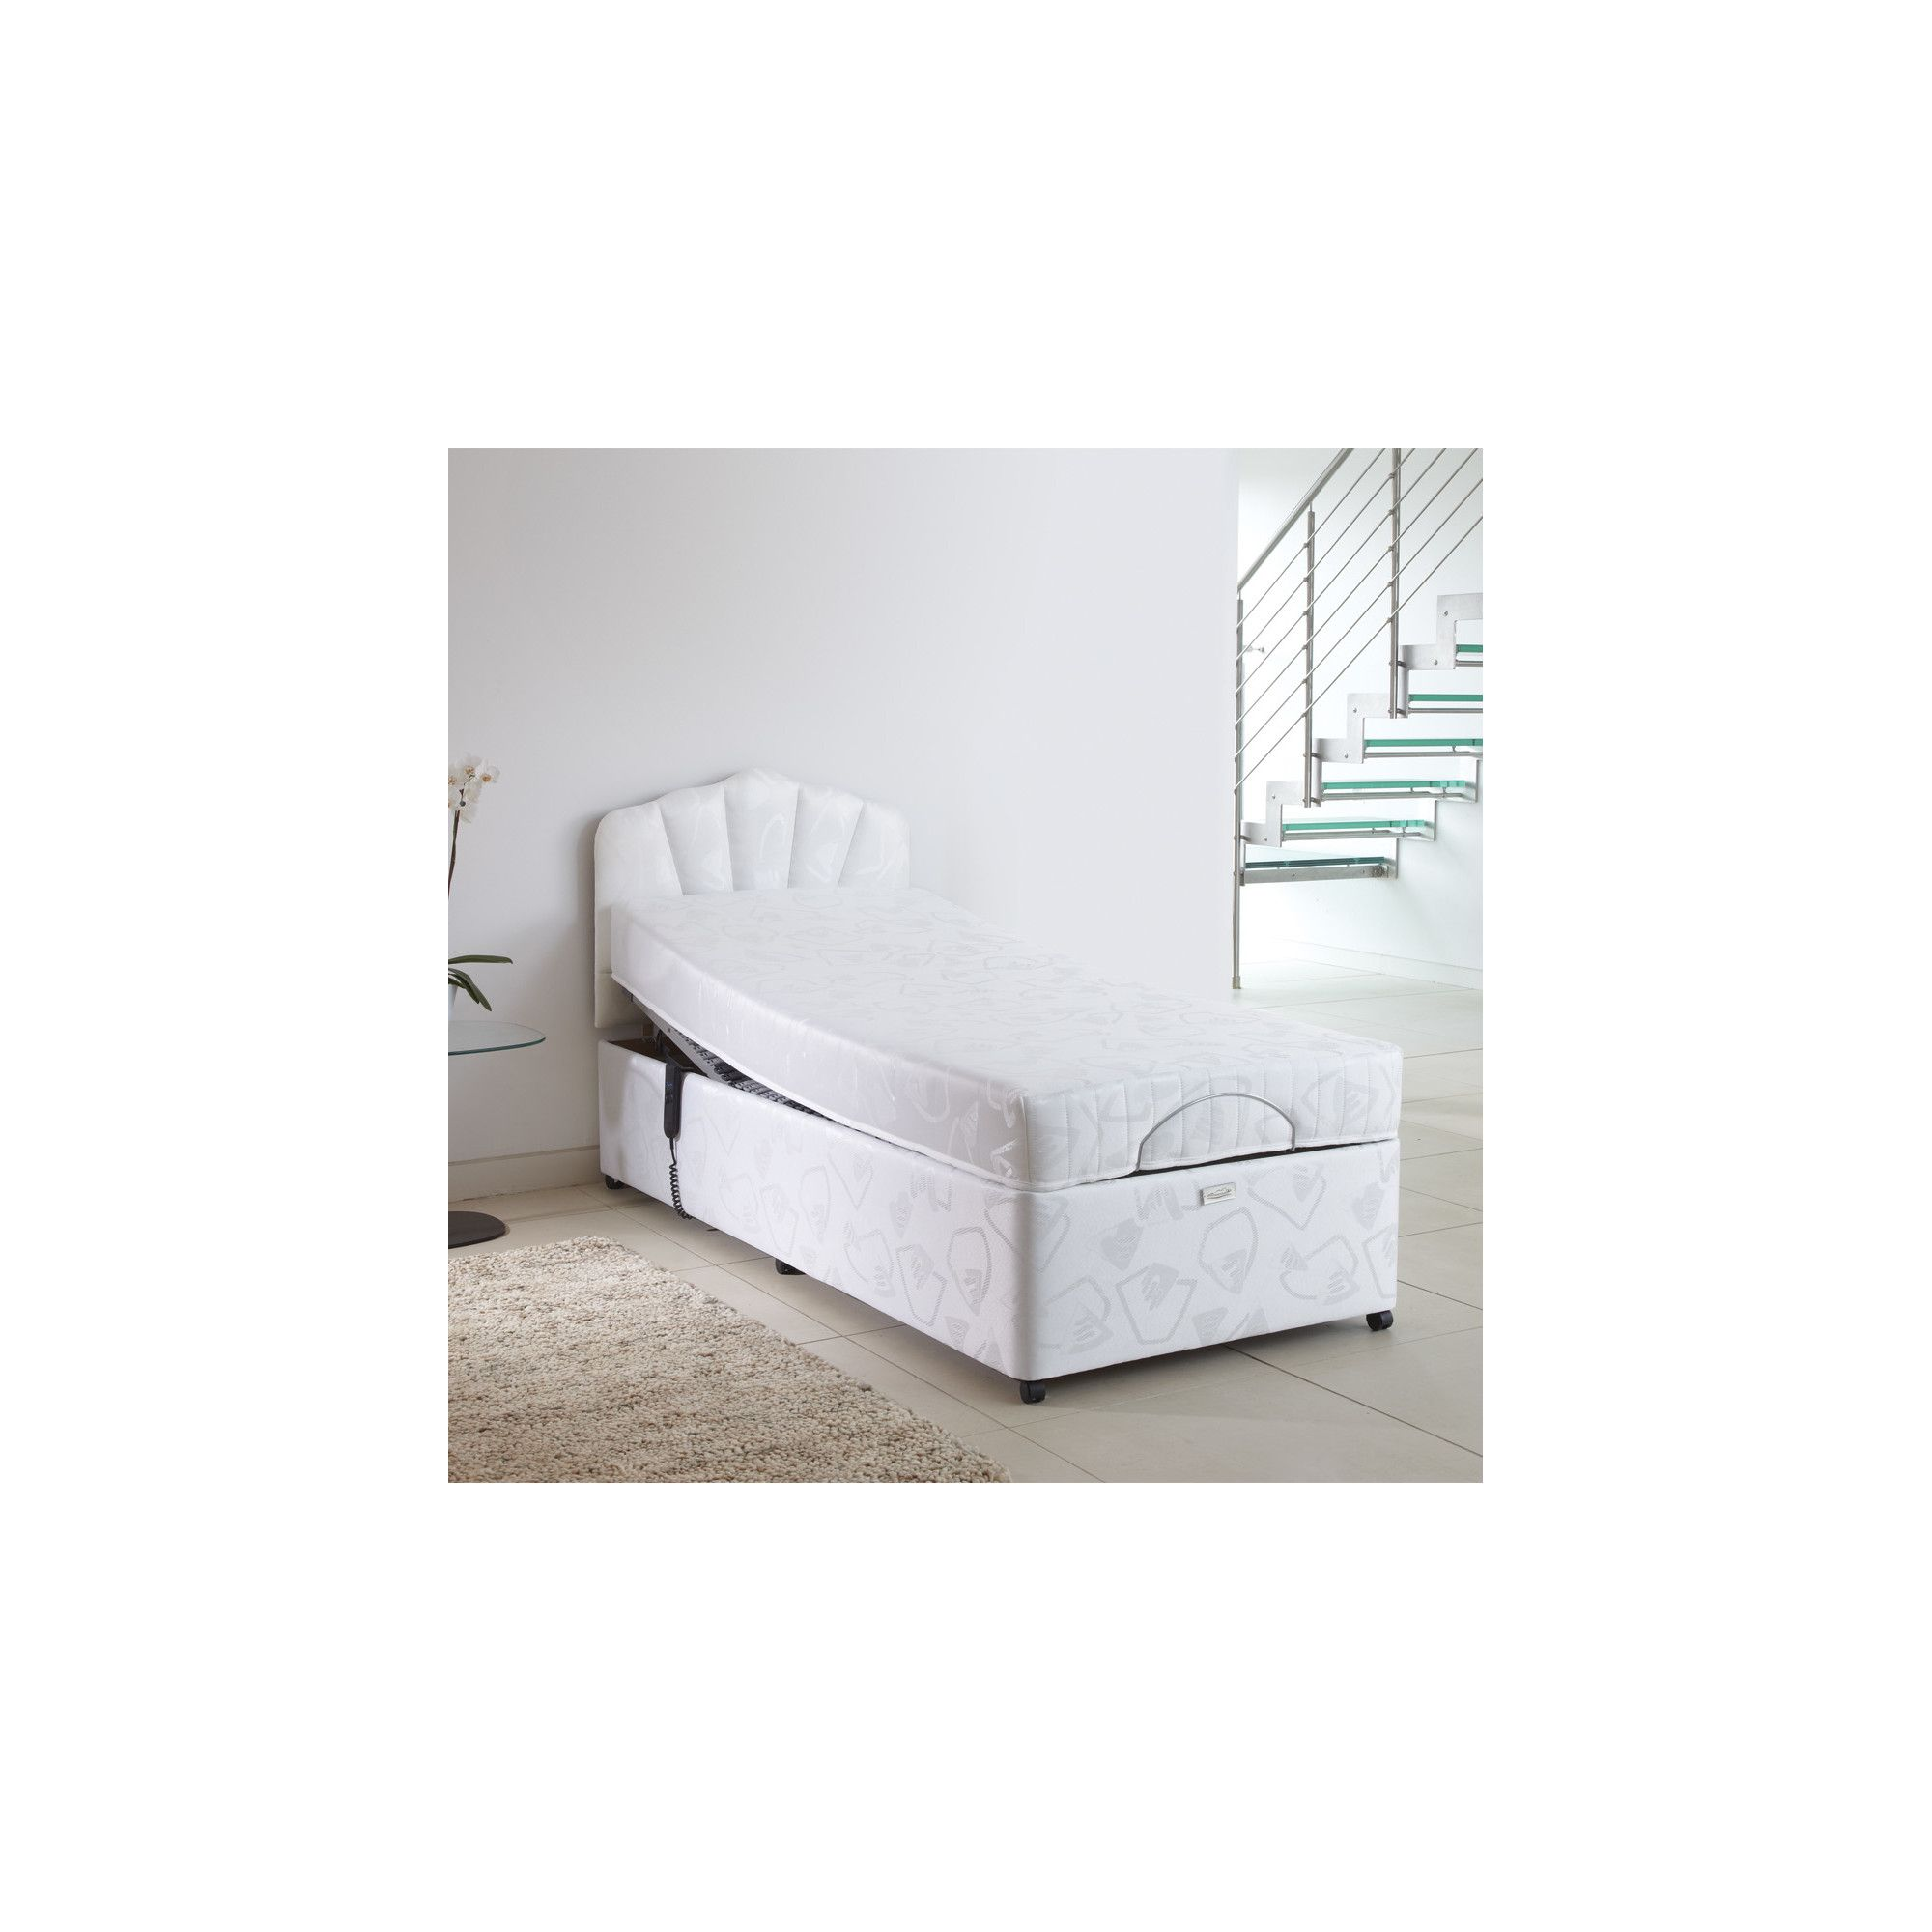 Bodyease Adjustable Deep Base Set with Electro Neptune Mattress - No Drawer - Small Single at Tesco Direct